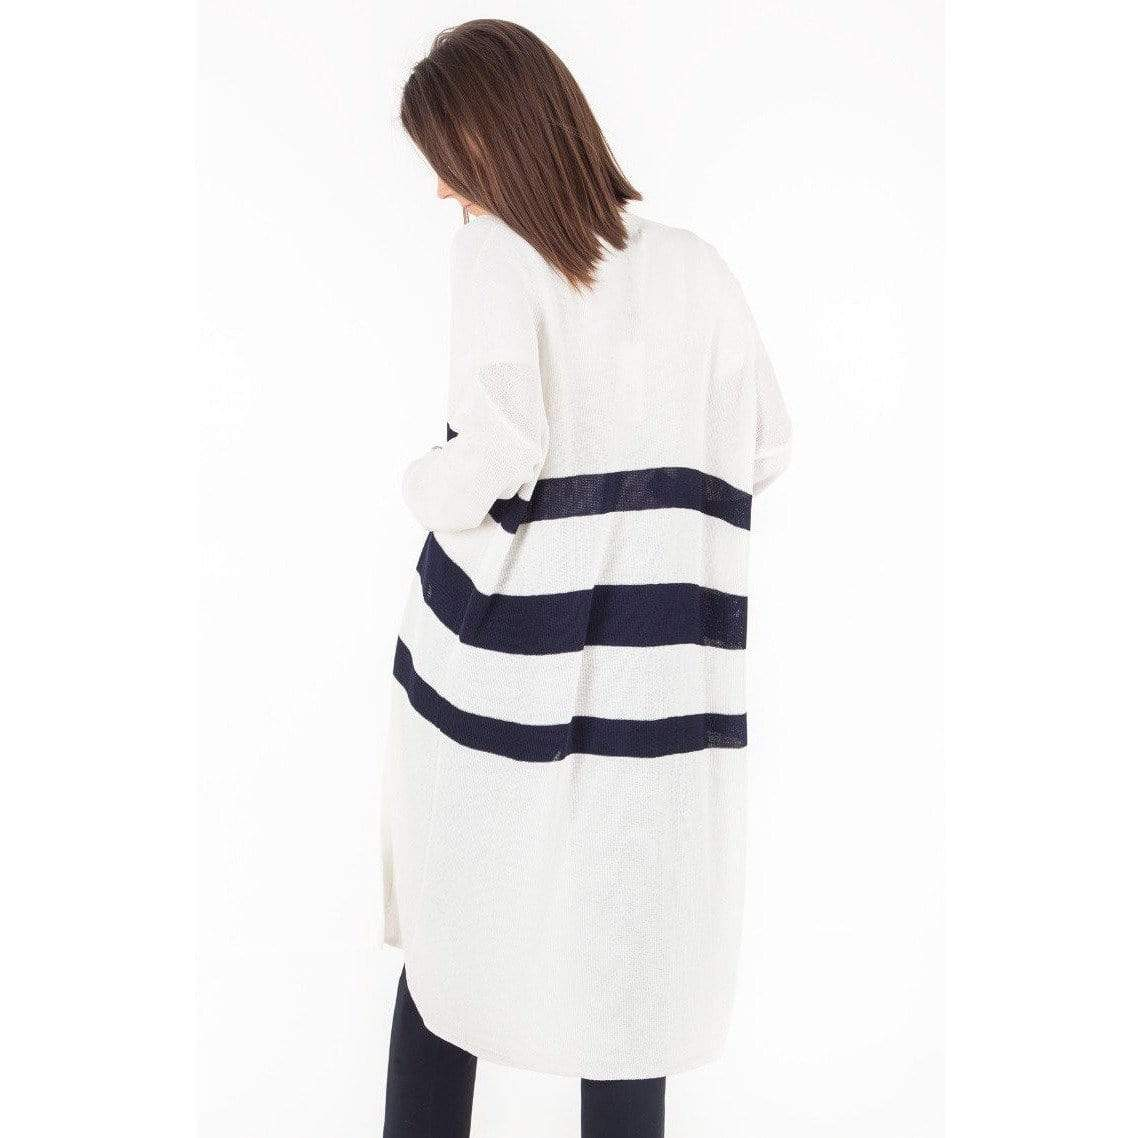 Molly Bracken IVORY / N/S Molly Bracken Nautical Stripe Knit Cardigan